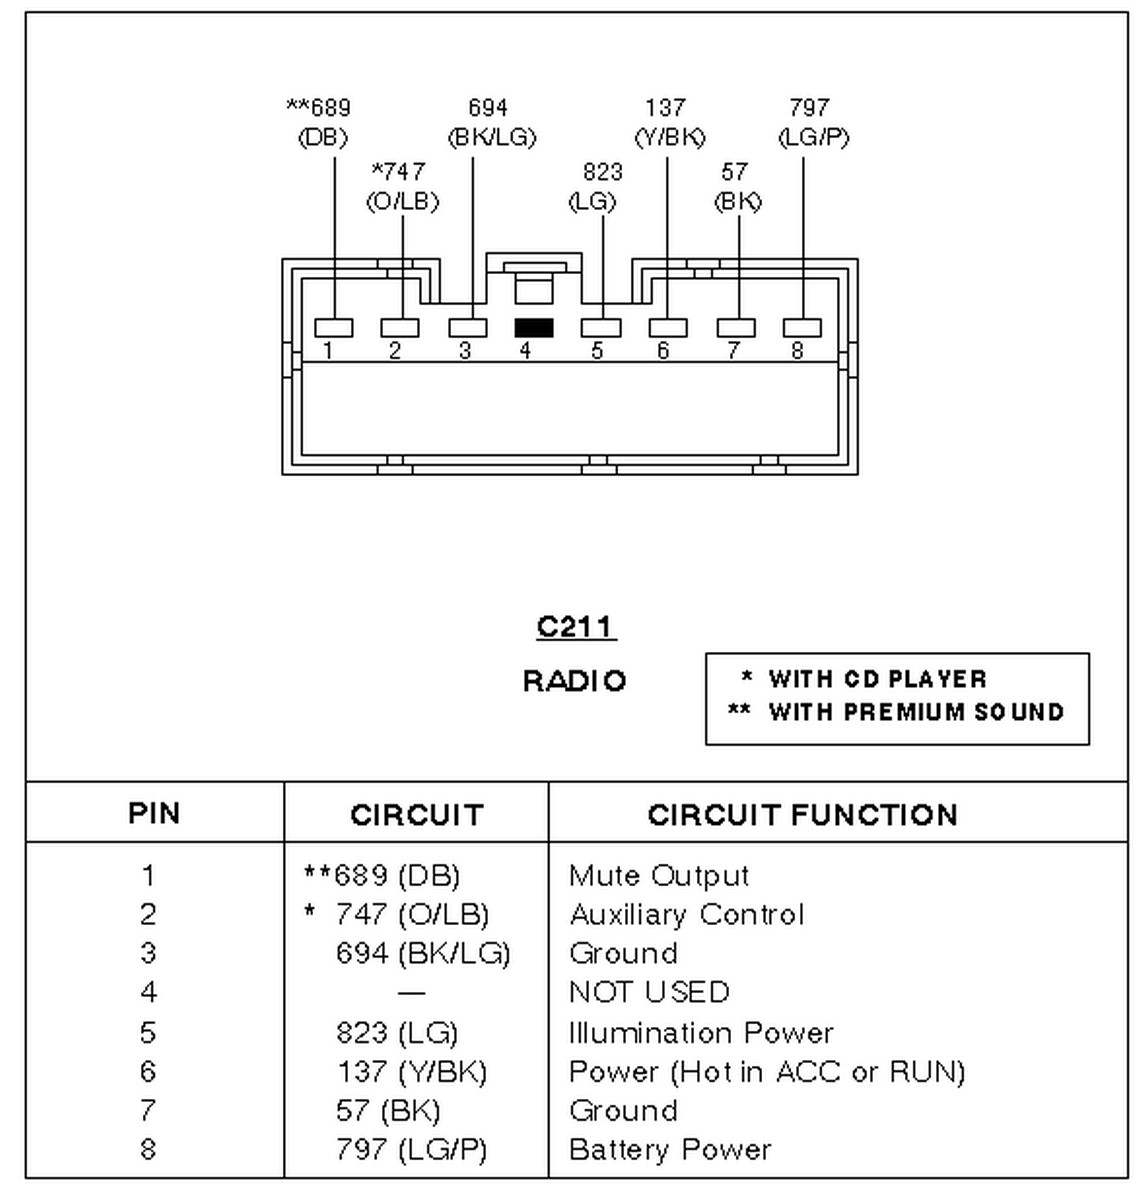 99 ford explorer radio wiring diagram